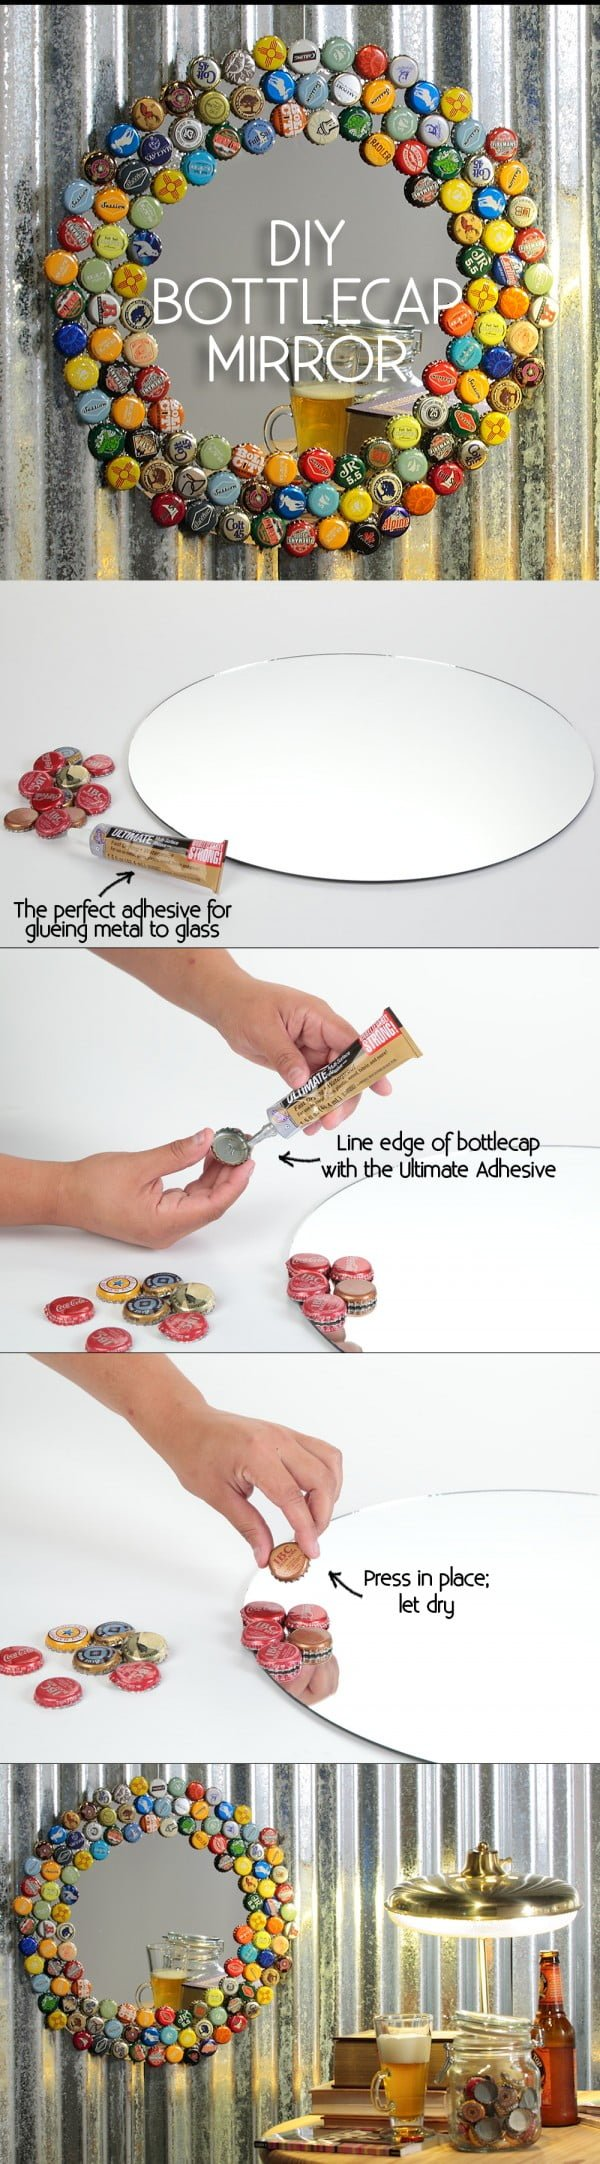 50 Fab DIY Mirror Frames You Can Easily Make Yourself - Check out how to make a DIY decorative mirror frame from bottlecaps